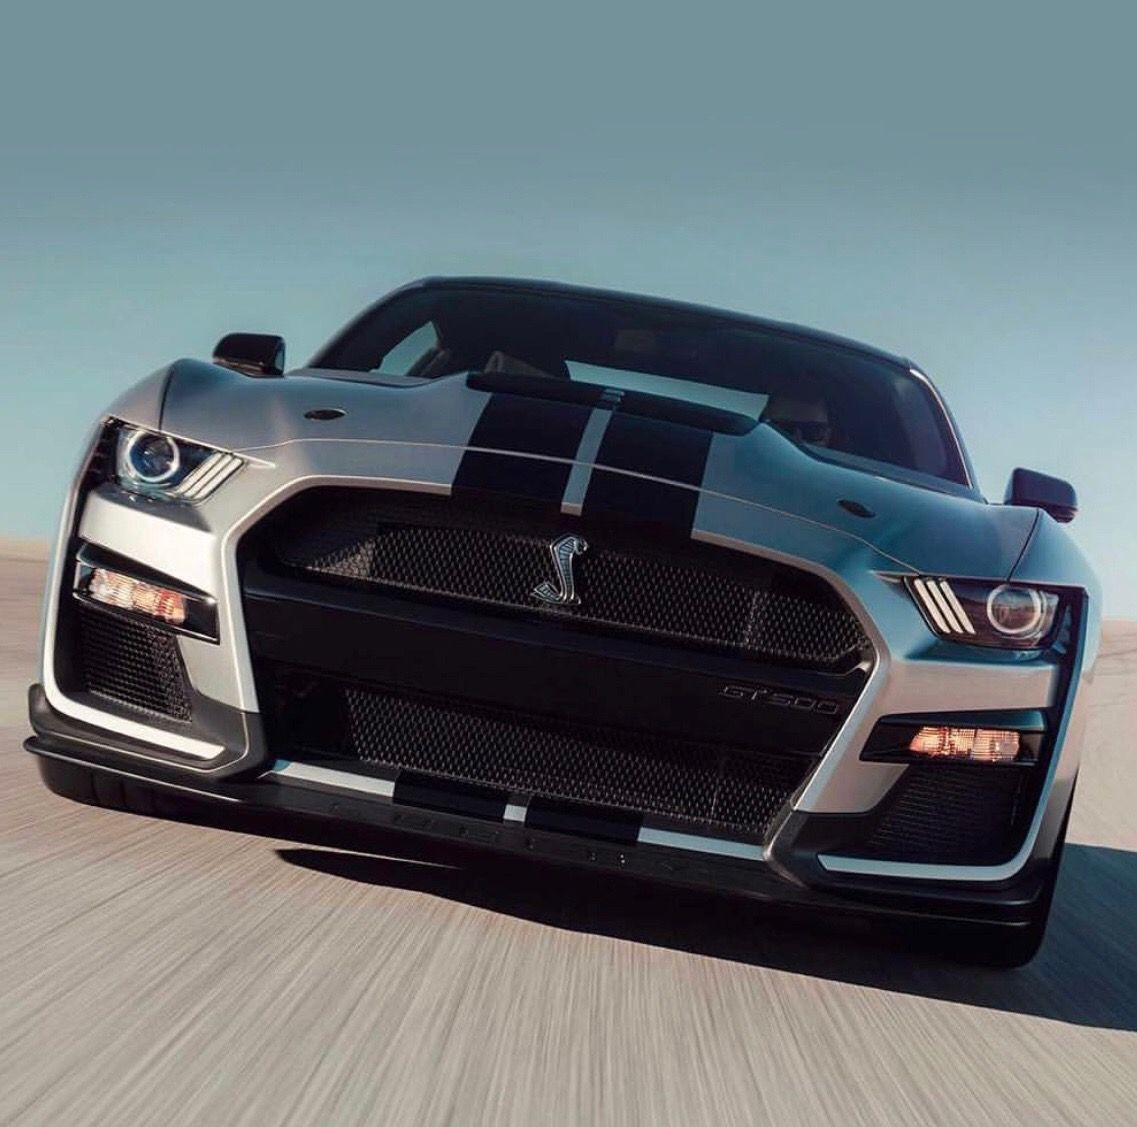 New Mustang Shelby Gt590 With Images New Mustang Mustang